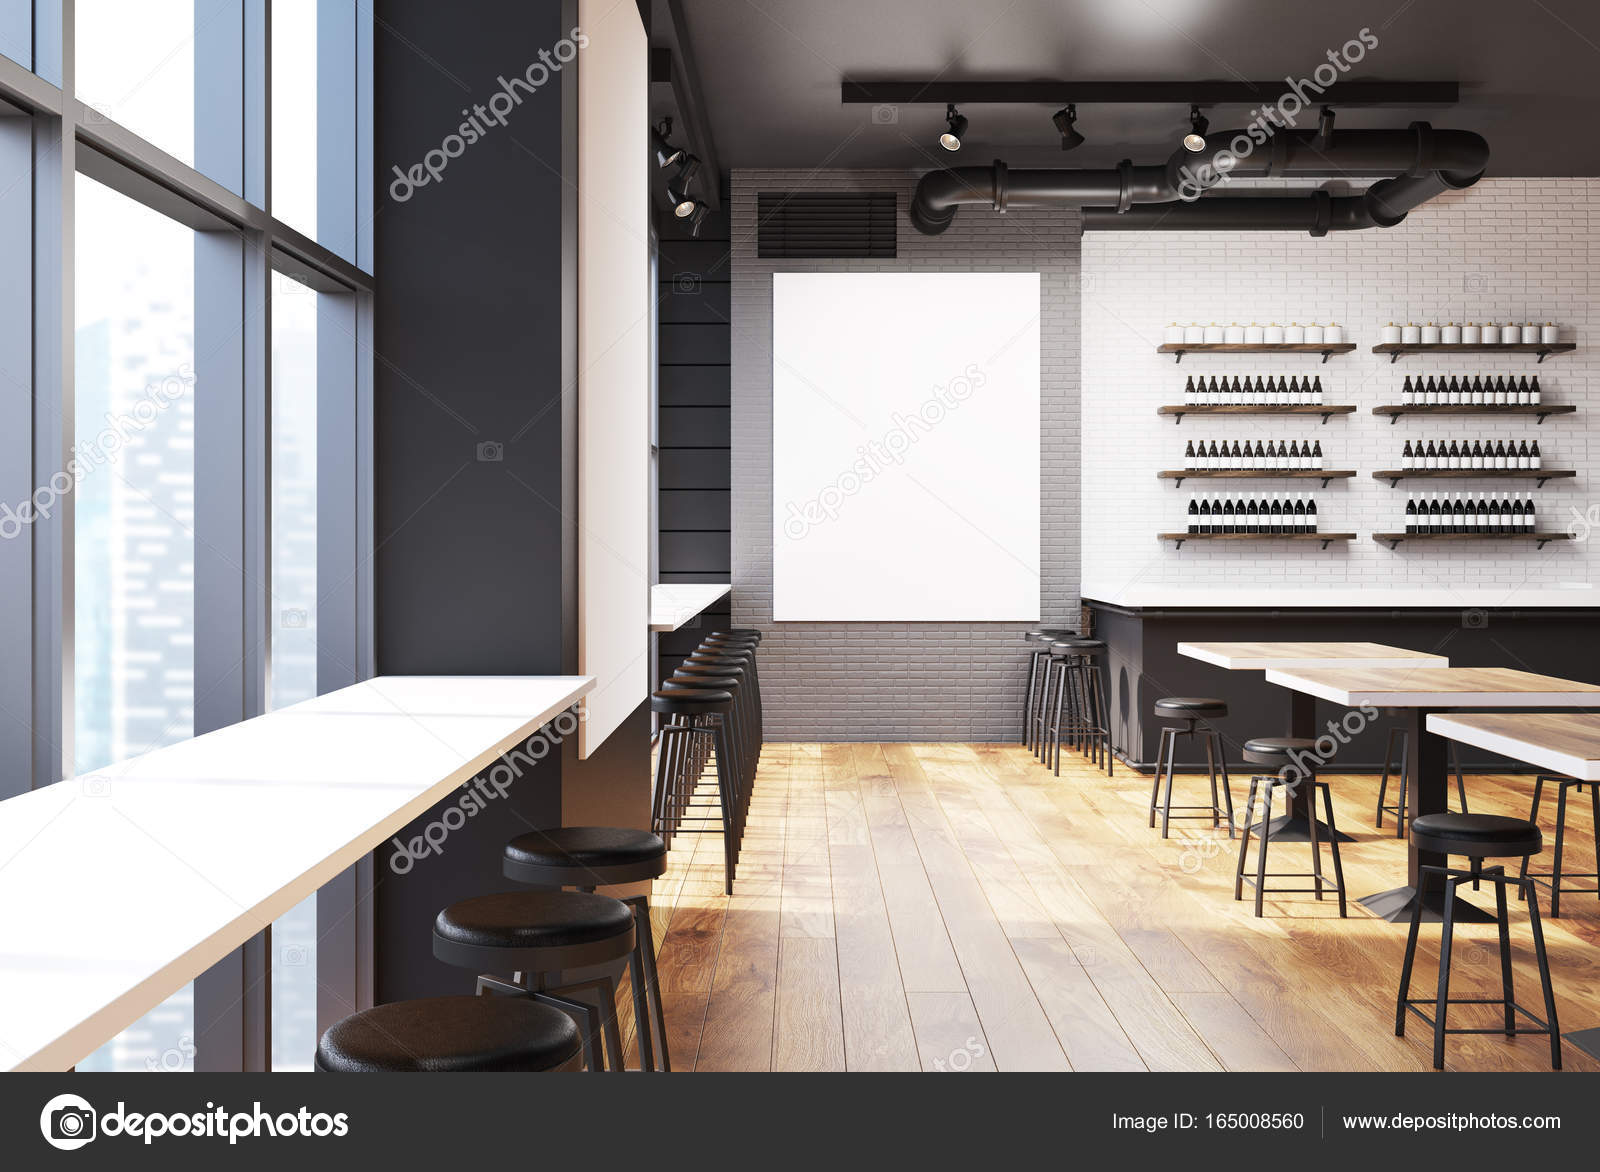 Gray And Brick Bar With A Poster, Front U2014 Stock Photo